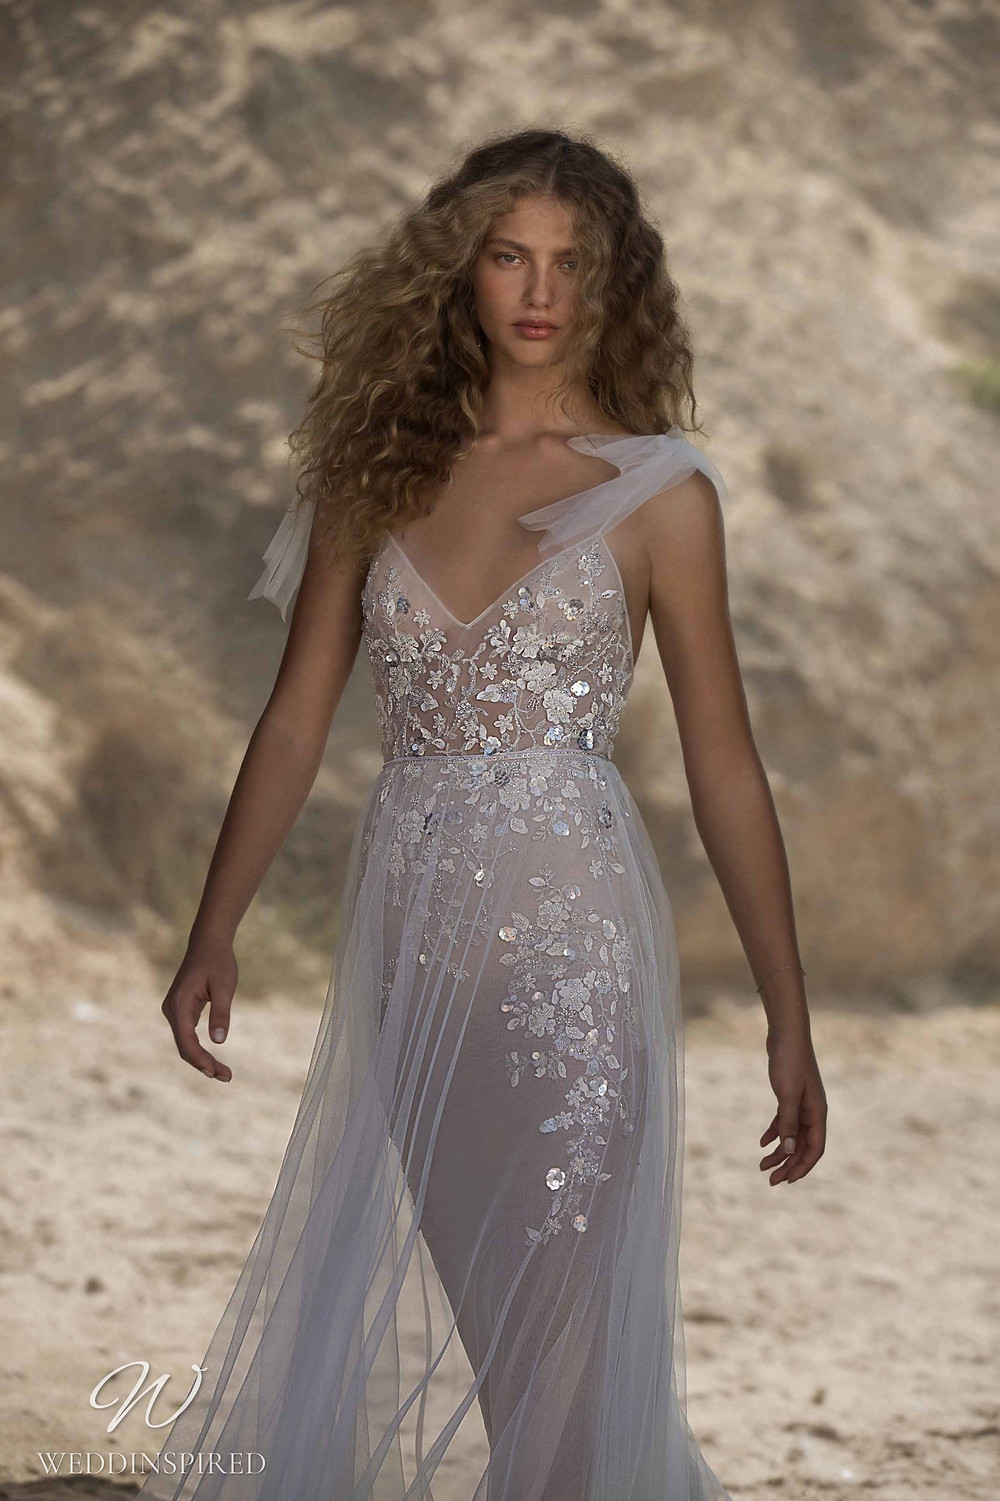 A Muse by Berta tulle beach mermaid wedding dress with silver glitter